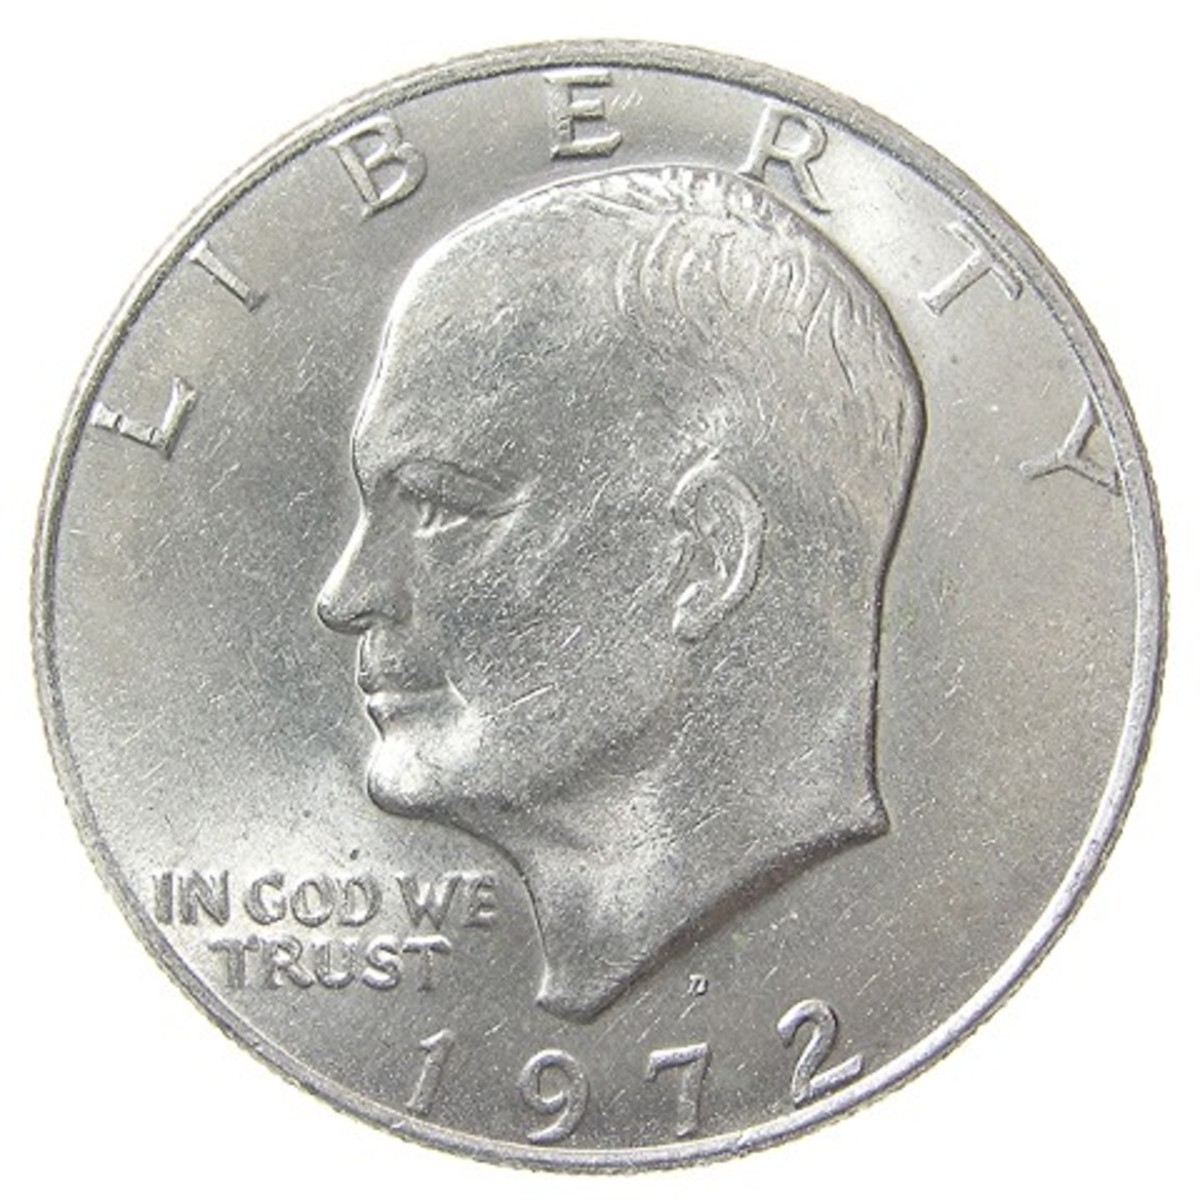 The Eisenhower Dollar: The last of the Over-sized Dollar Coins